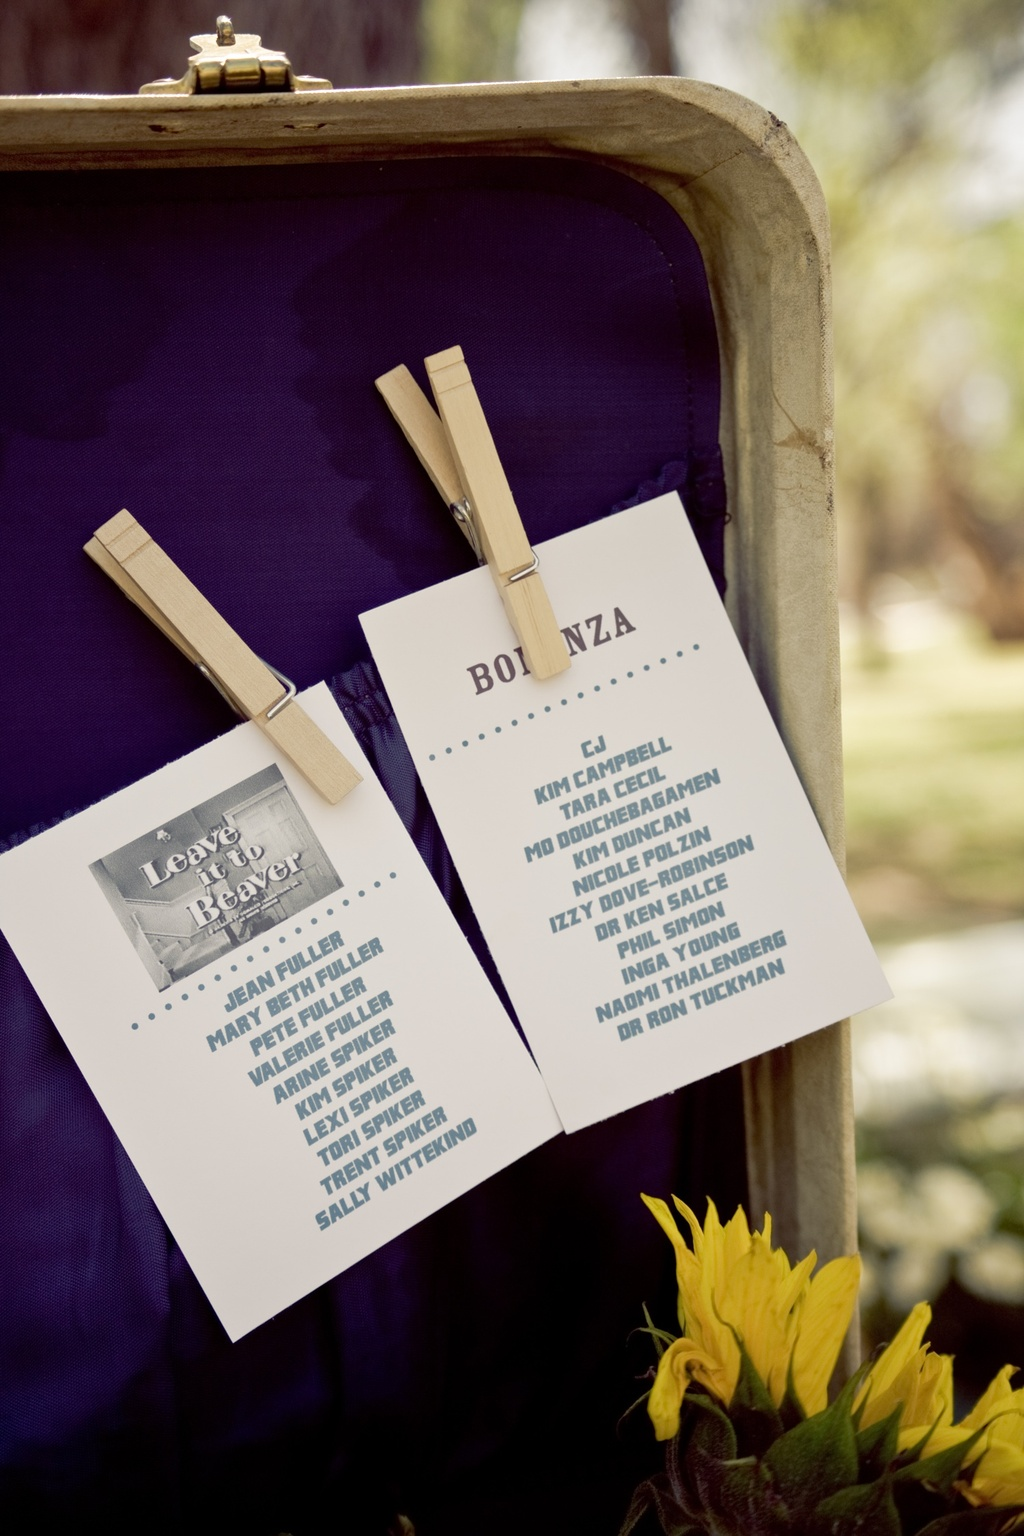 1950s Inspired Wedding Theme With Old Tv Shows As Table Names